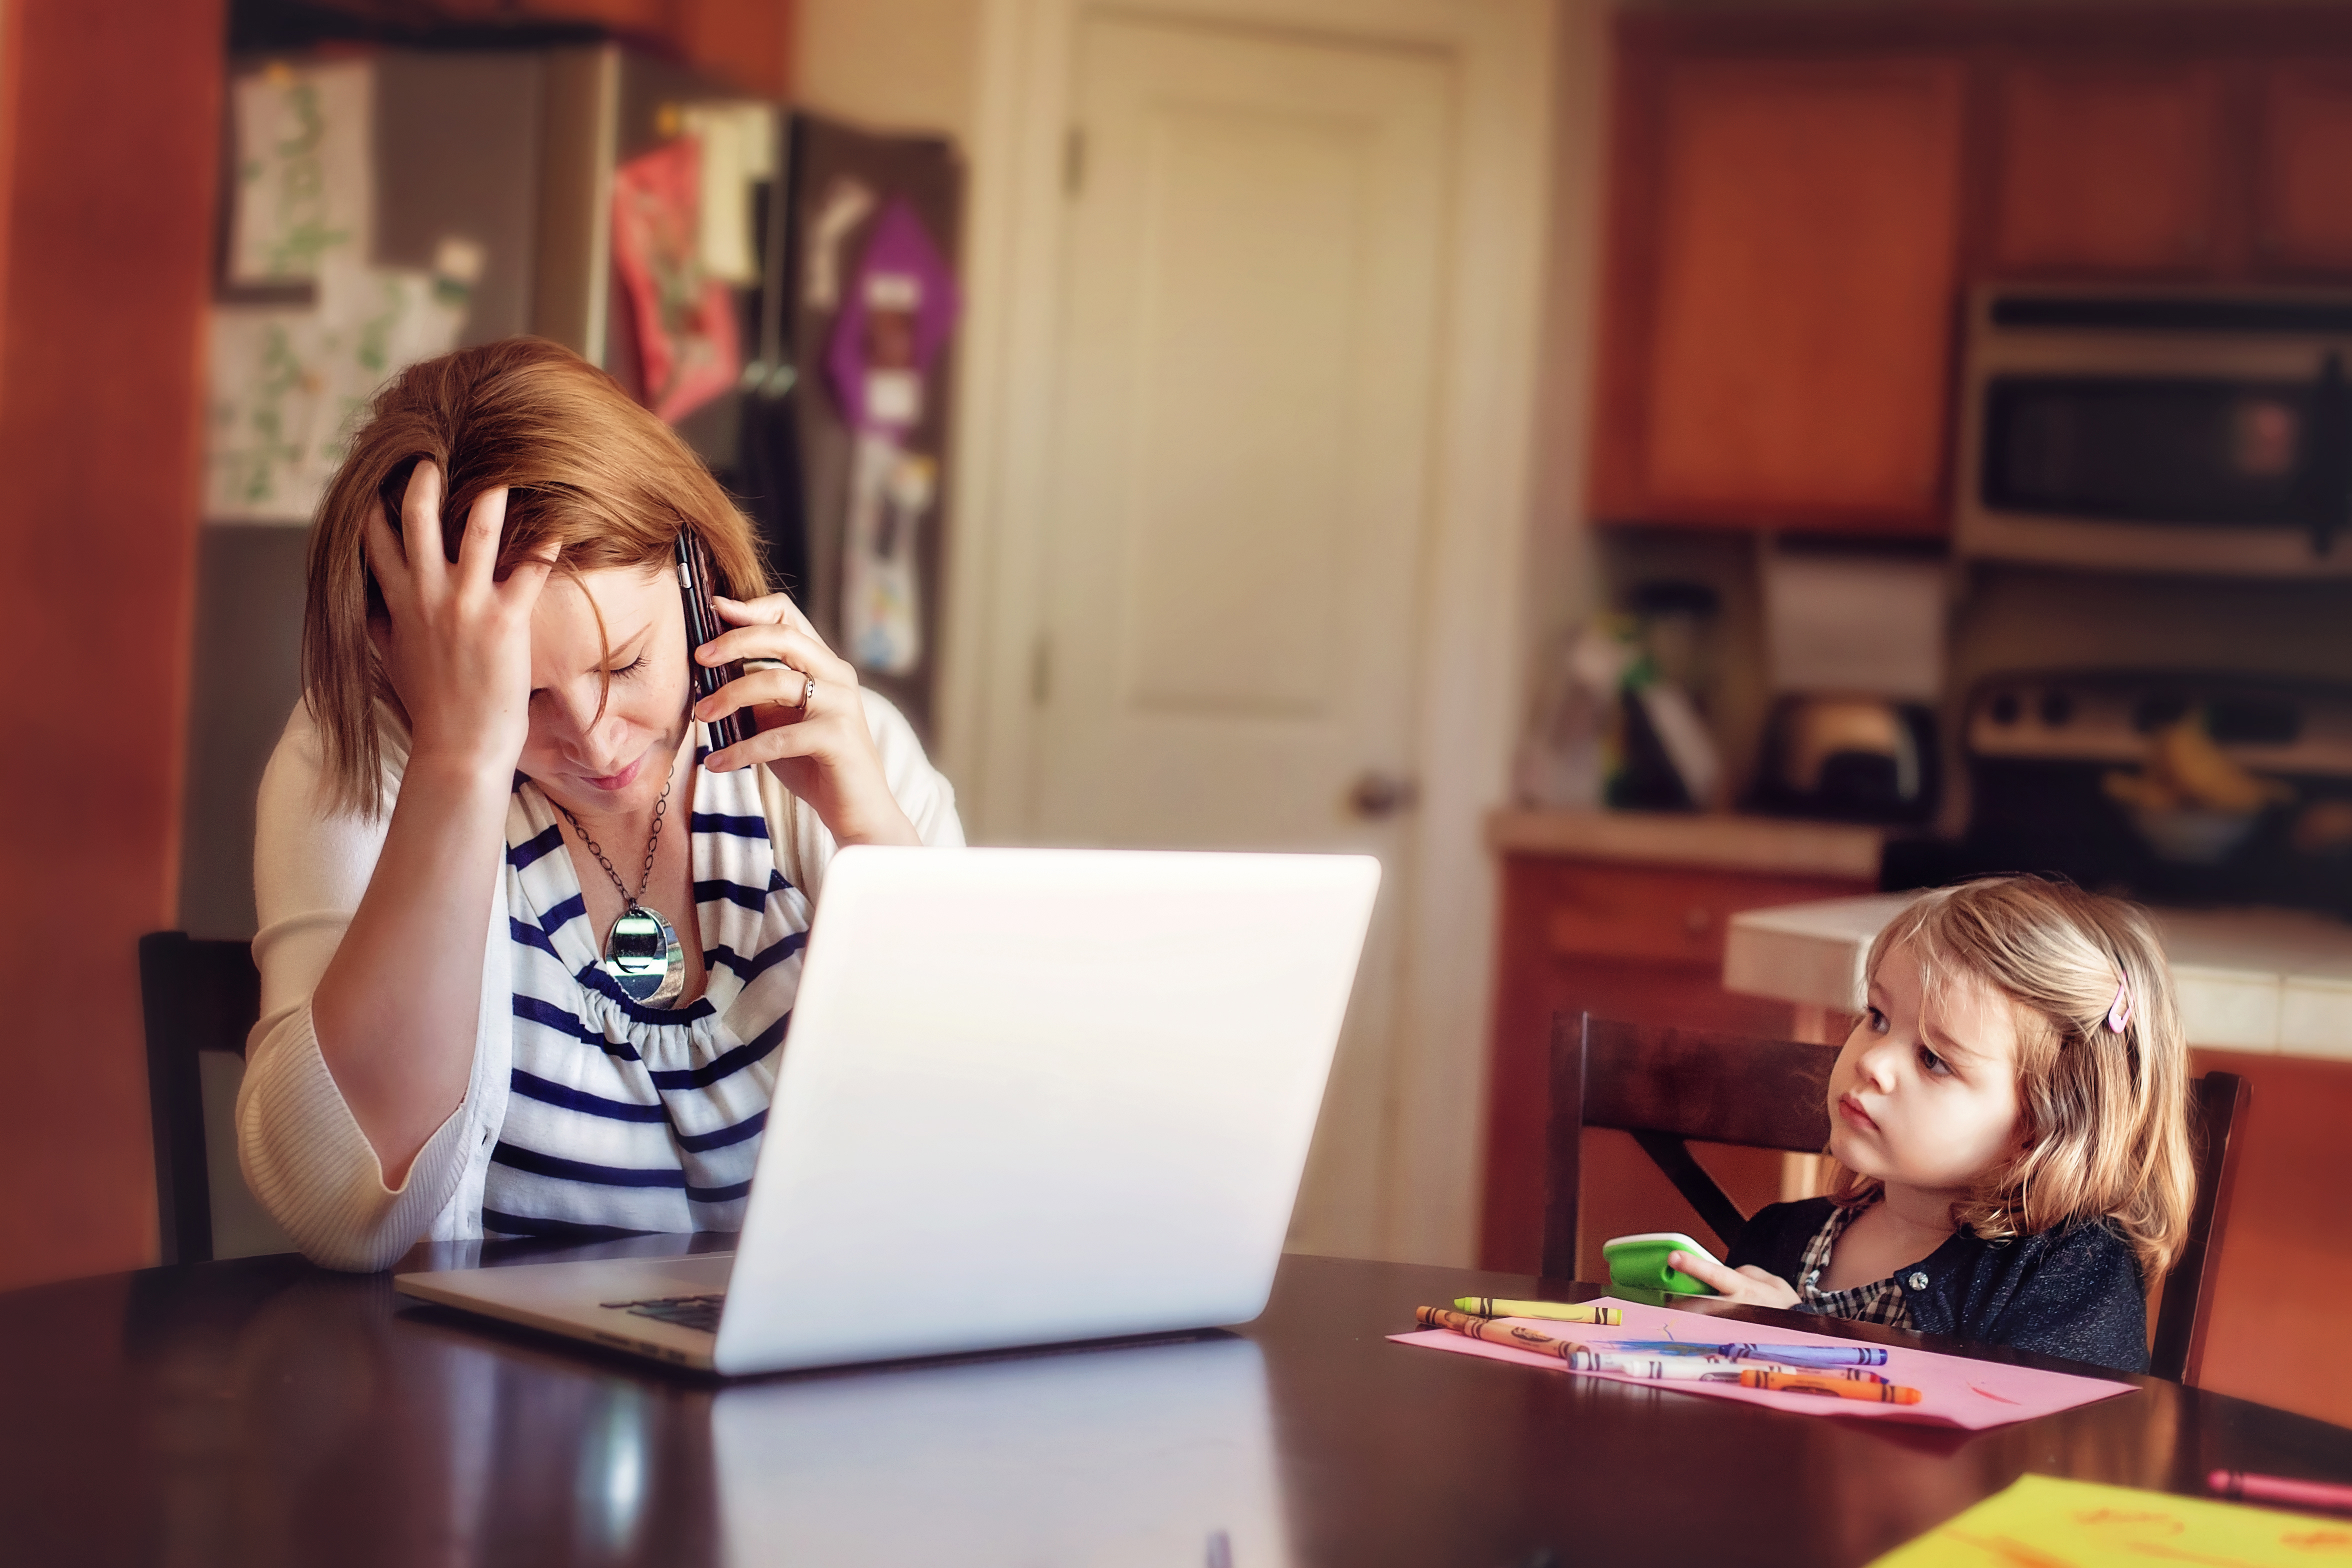 Woman frustrated at computer while daughter watches concerned